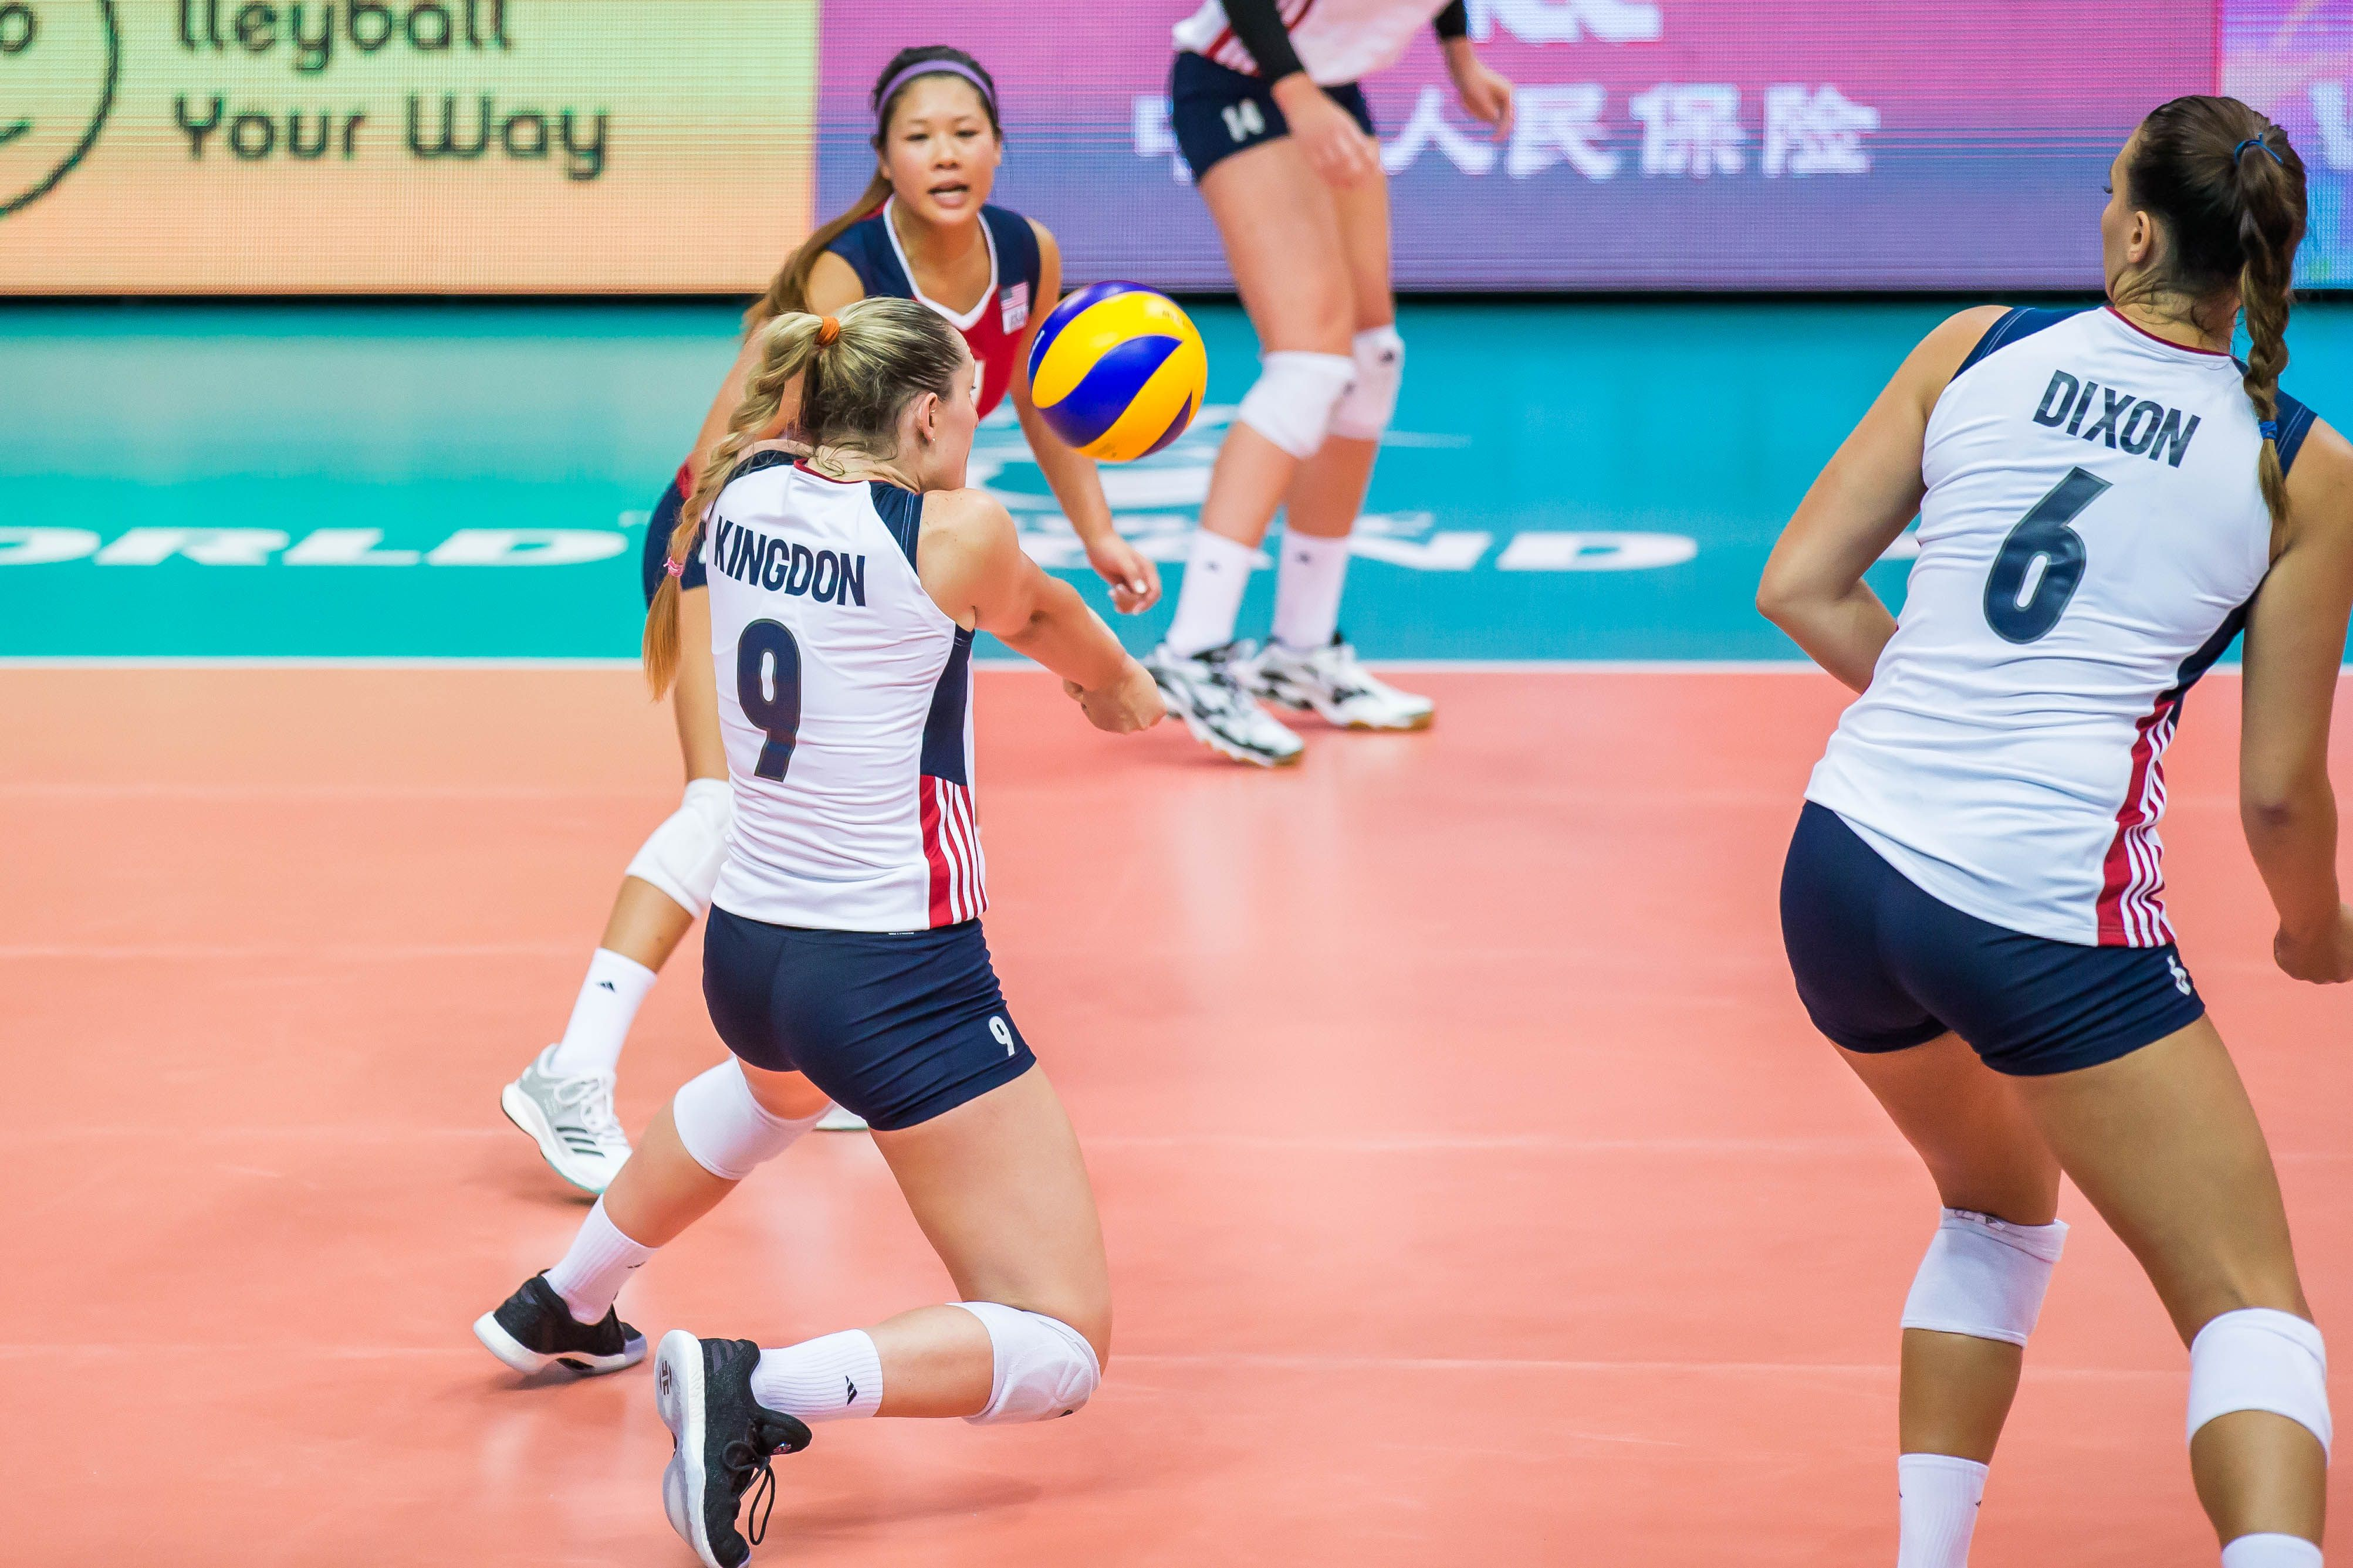 Madison Kingdon Scores 57 Points In South Korean League Nearly A Wr Volleyball News League Madison